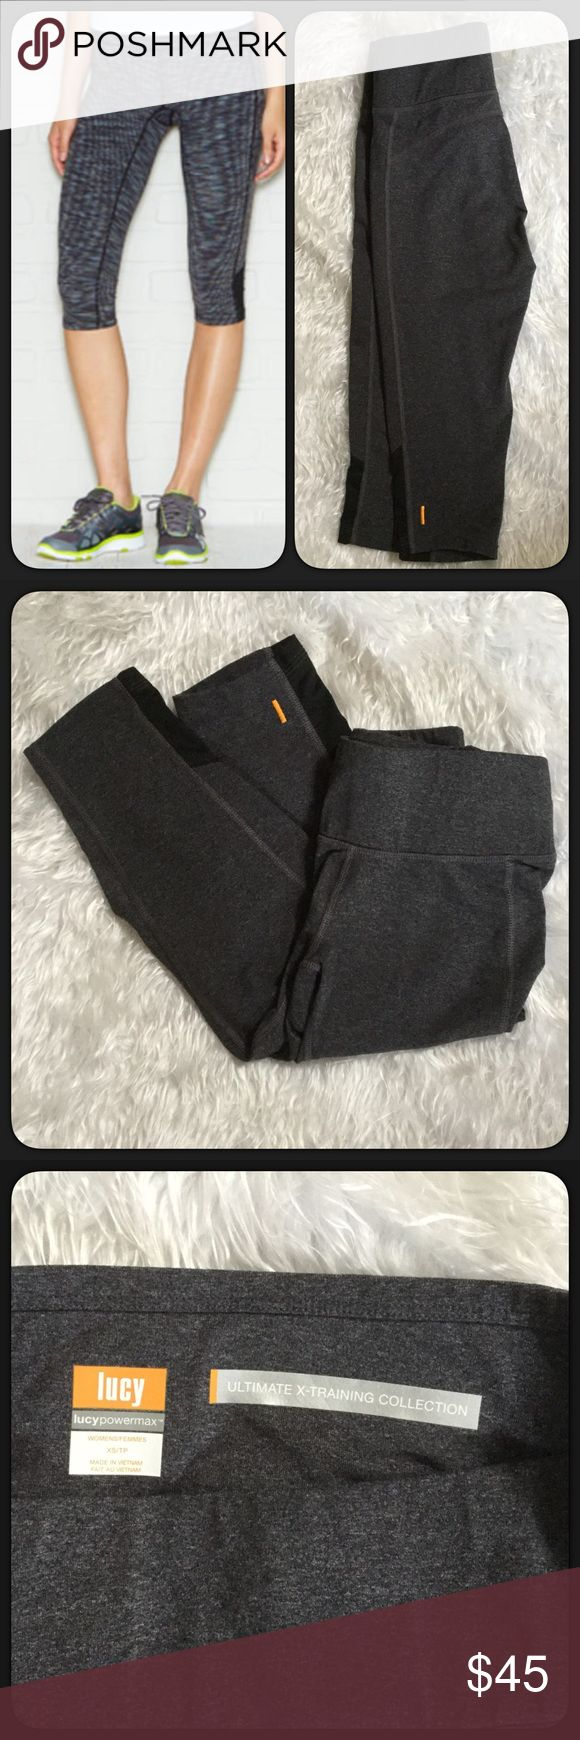 "🆕Lucy Ultimate X-Training Capri NWOT NWOT charcoal gray Lucy Ultimate X-Training Capris. Size XS. Inseam approximately 14"" lying flat and not stretched. These are awesome high quality capris, I bought the wrong size, never worn. Lucy Pants Capris"